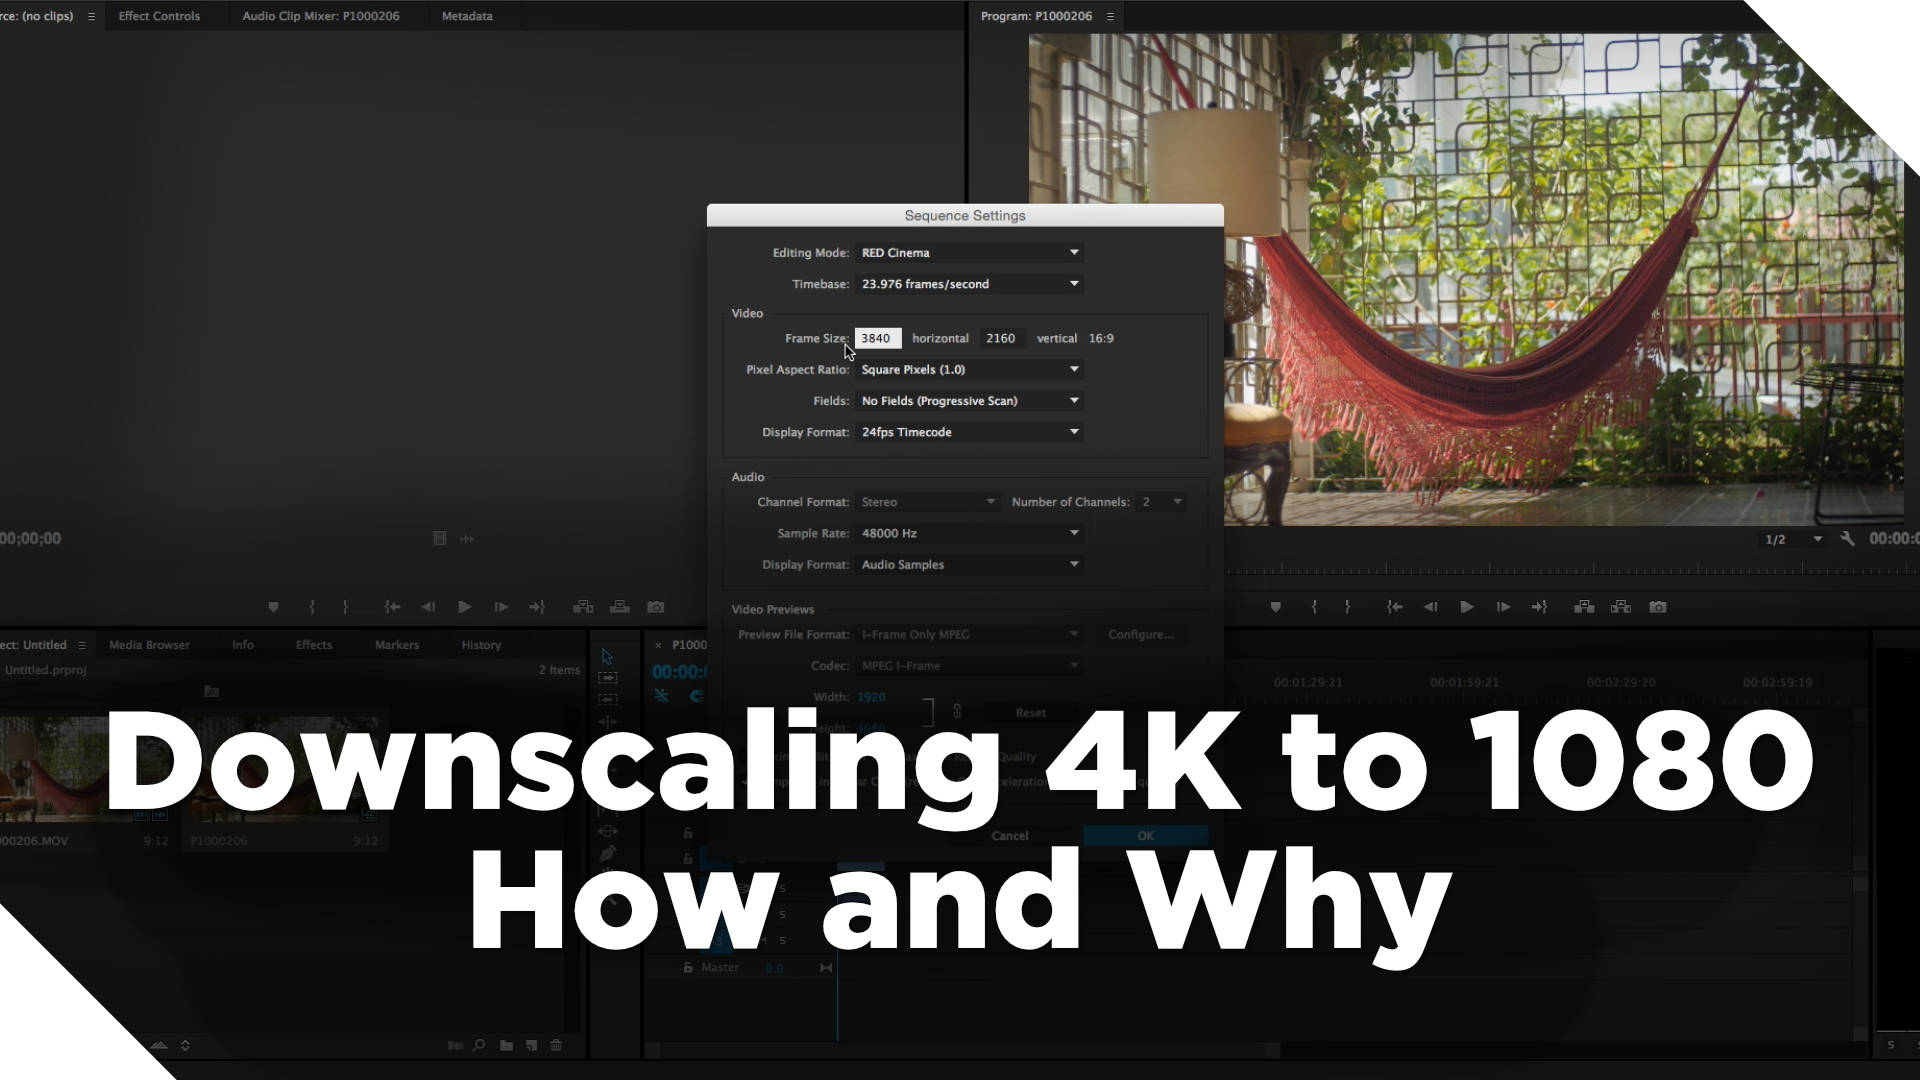 How and Why You Should Downscale 4K to 1080